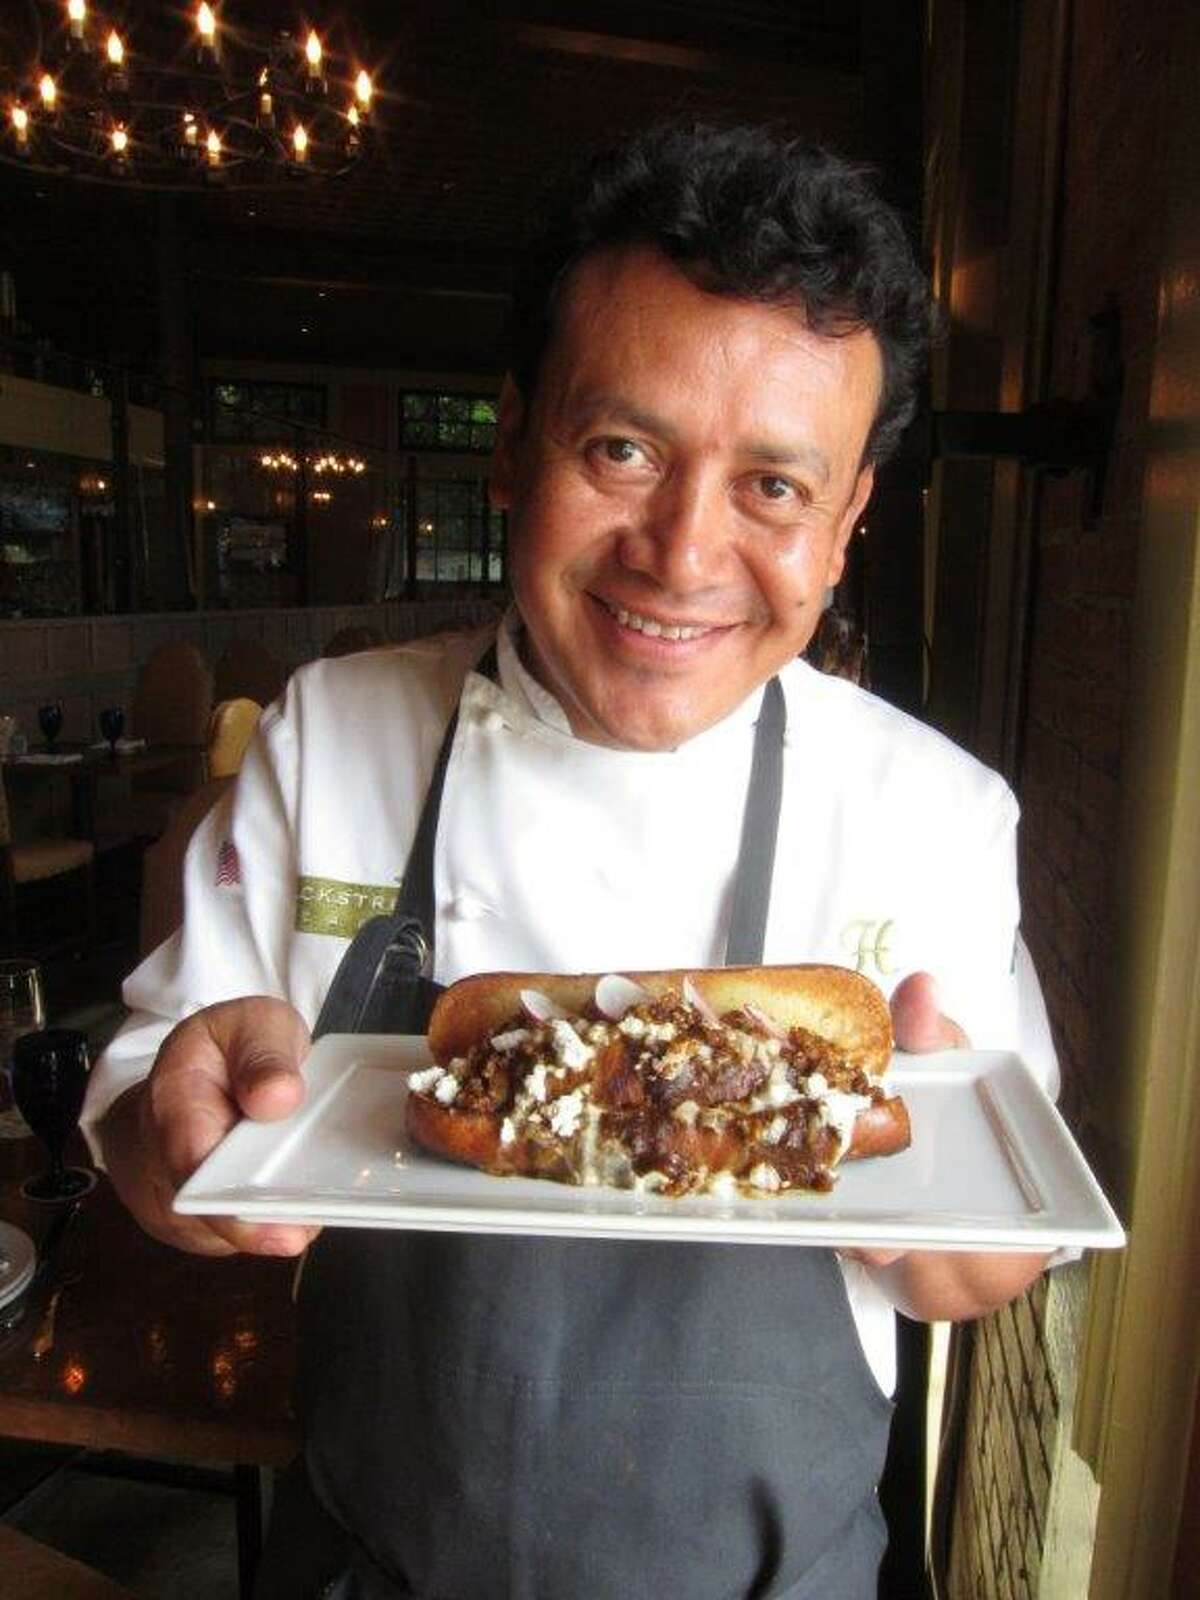 Hugo Ortega, the executive chef/co-owner of the popular Hugo s, Backstreet Caf , Prego and the soon to open Caracol, will be introducing his Holy Mol dog at all 21 James Coney Island stores the day after Halloween. Chef Ortega, who is the sixth participating chef in the series, has created a saucy/cheesy dog using a smoked chicken Andouille sausage on a Slow Dough pretzel bun, topping it with tinga, mol sauce, queso fresco, crema fresca and minced onions. It s garnished with sliced radish. It's called the Holy Mol